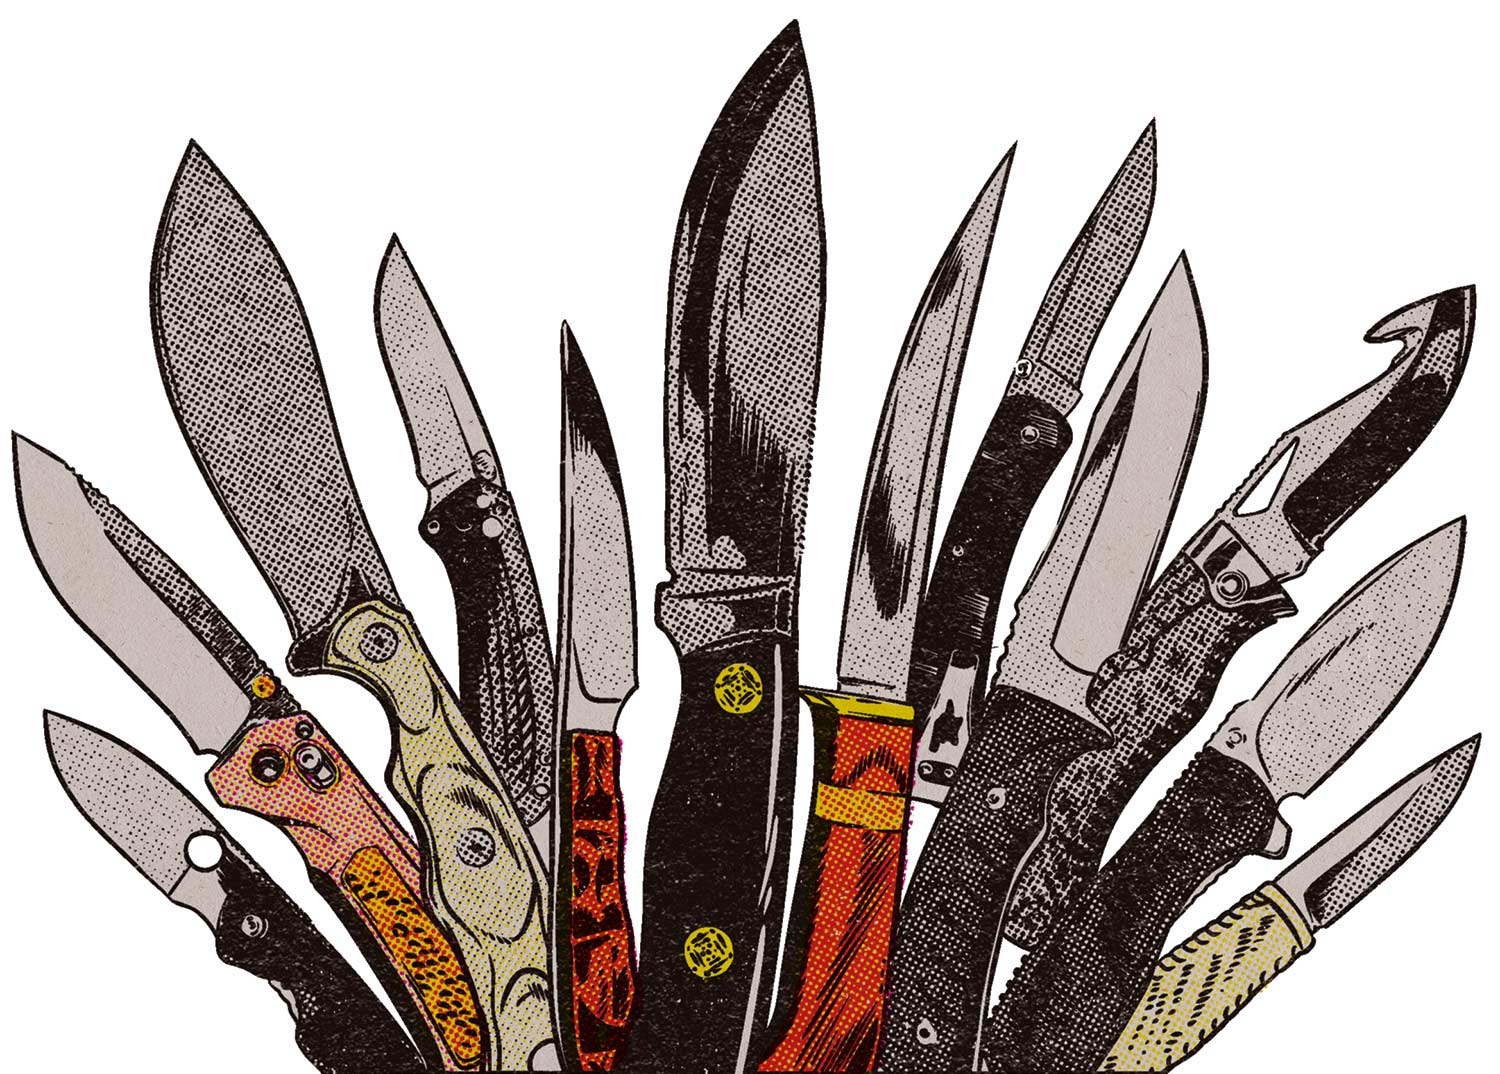 Illustration of a knife collection.